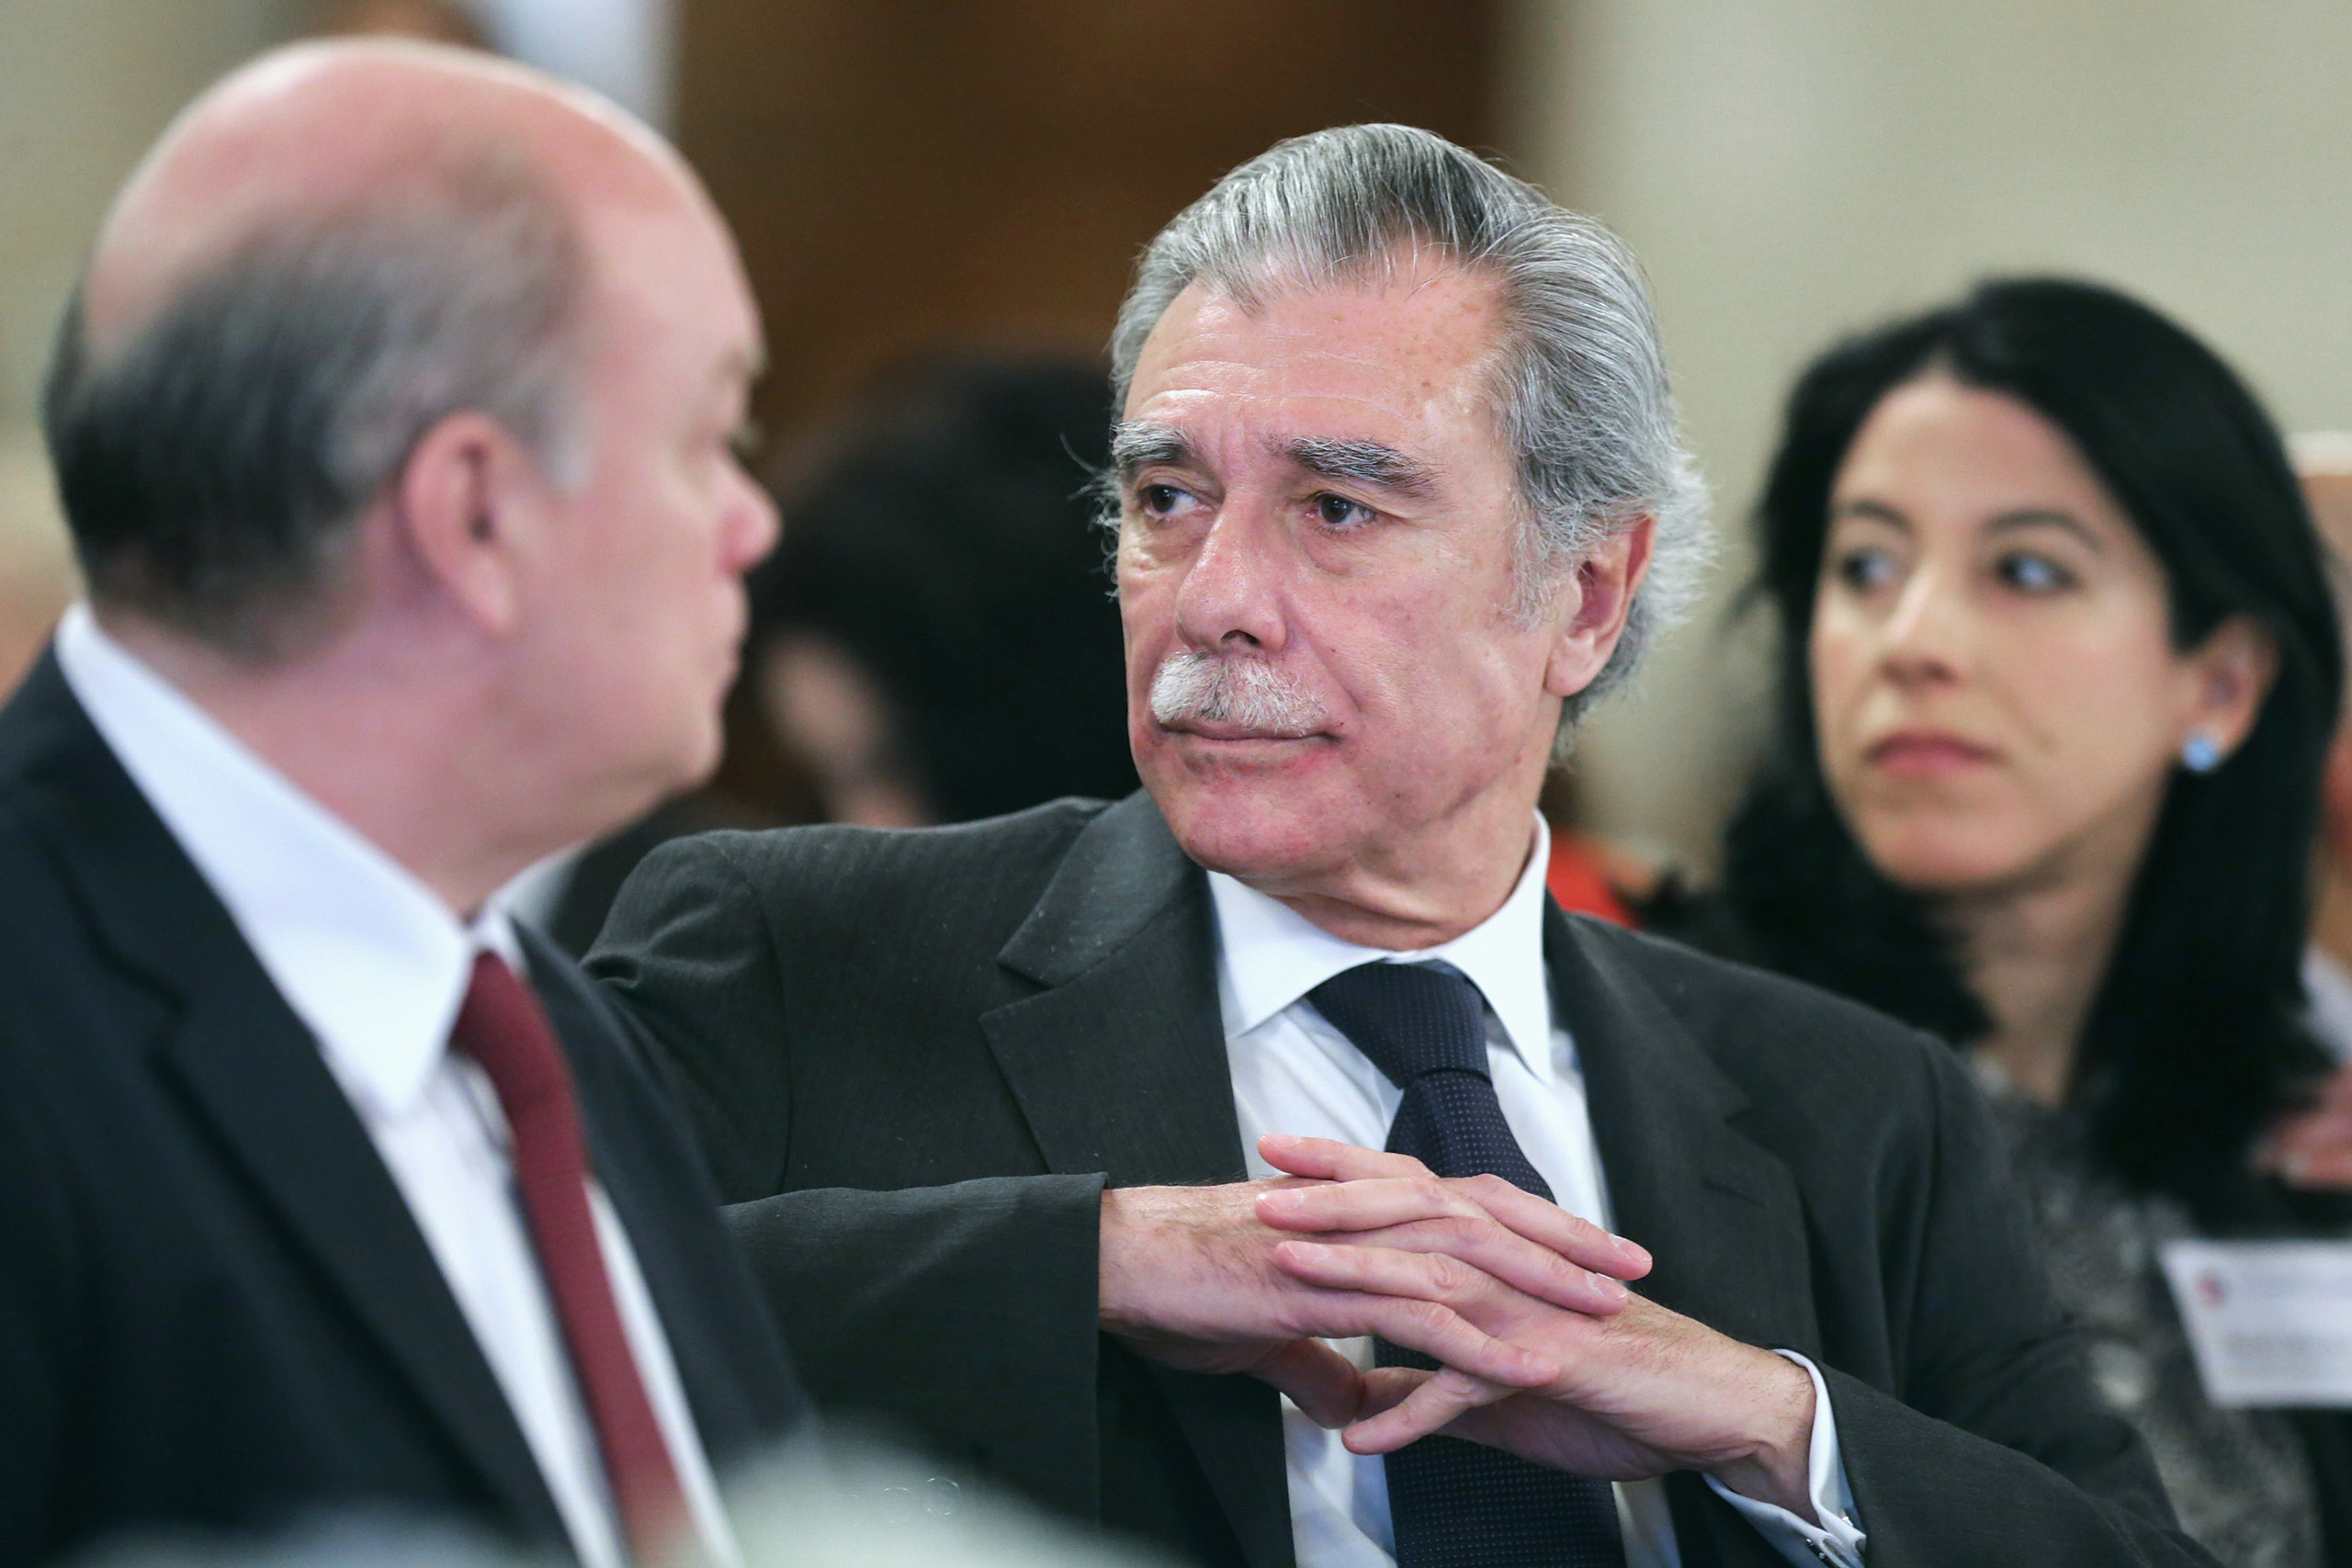 Former Secretary of Commerce Carlos Gutierrez attends a luncheon following a meeting of the business council at the chamber's headquarters in Washington on Feb. 16, 2016.